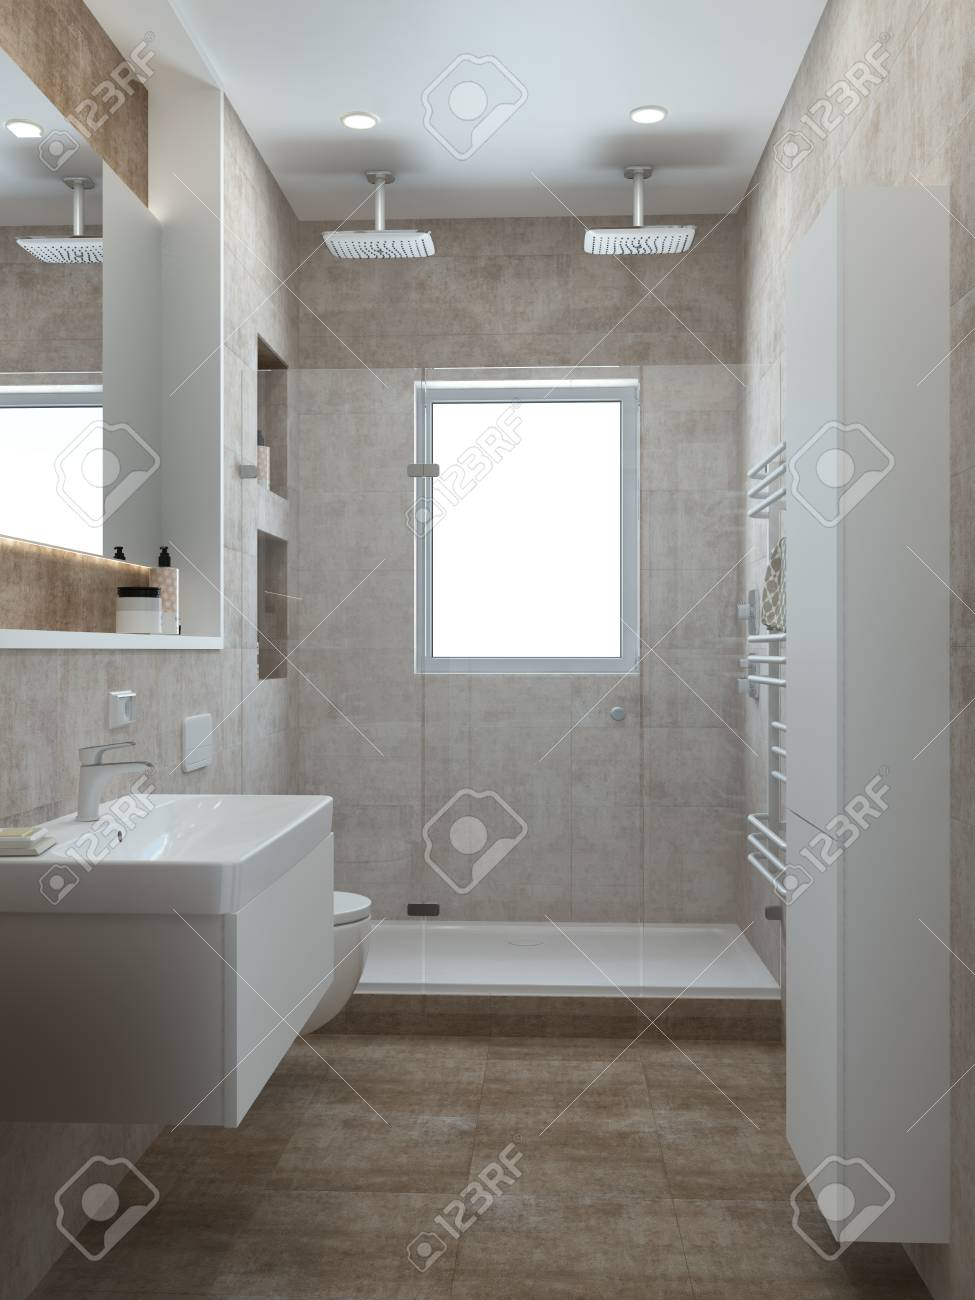 Badezimmer Bilder Modern Stock Photo